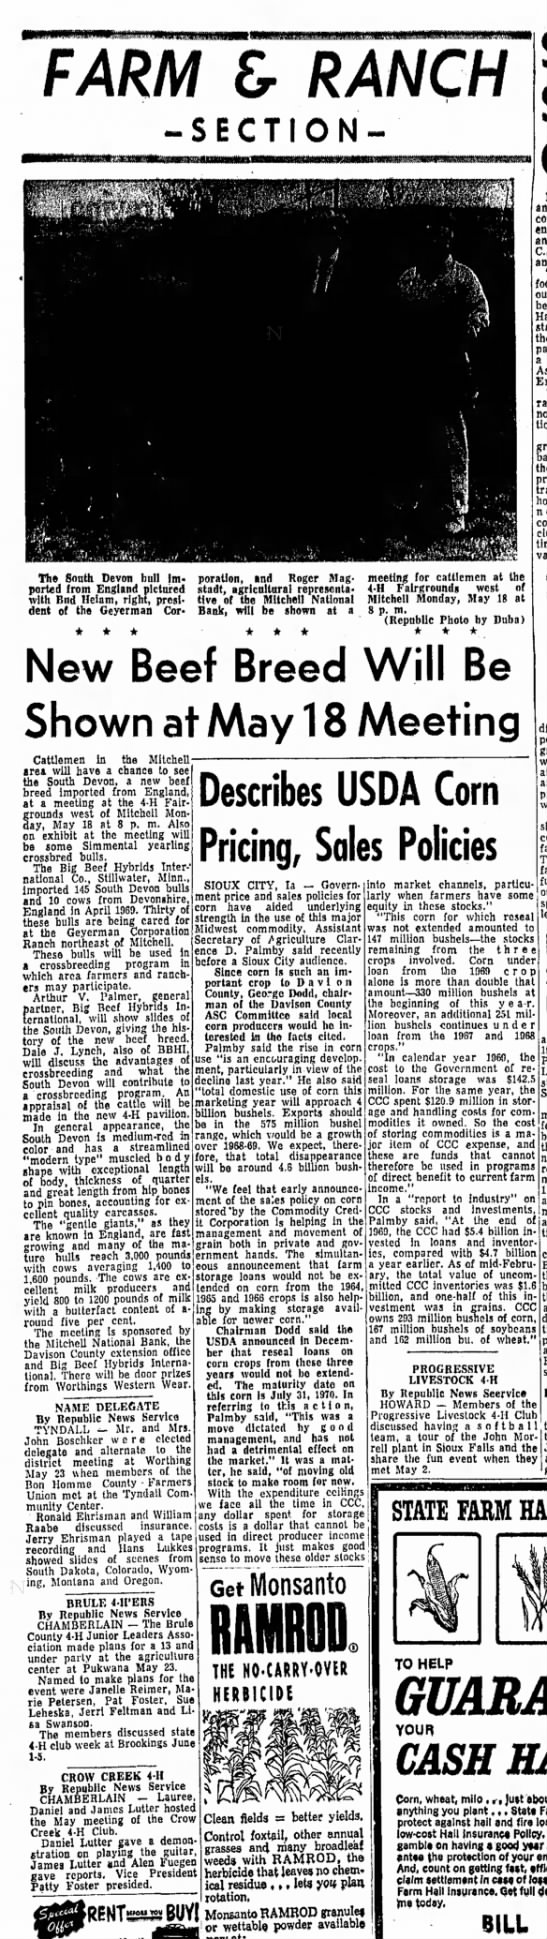 The Daily Republic 15 Nat 1970 -